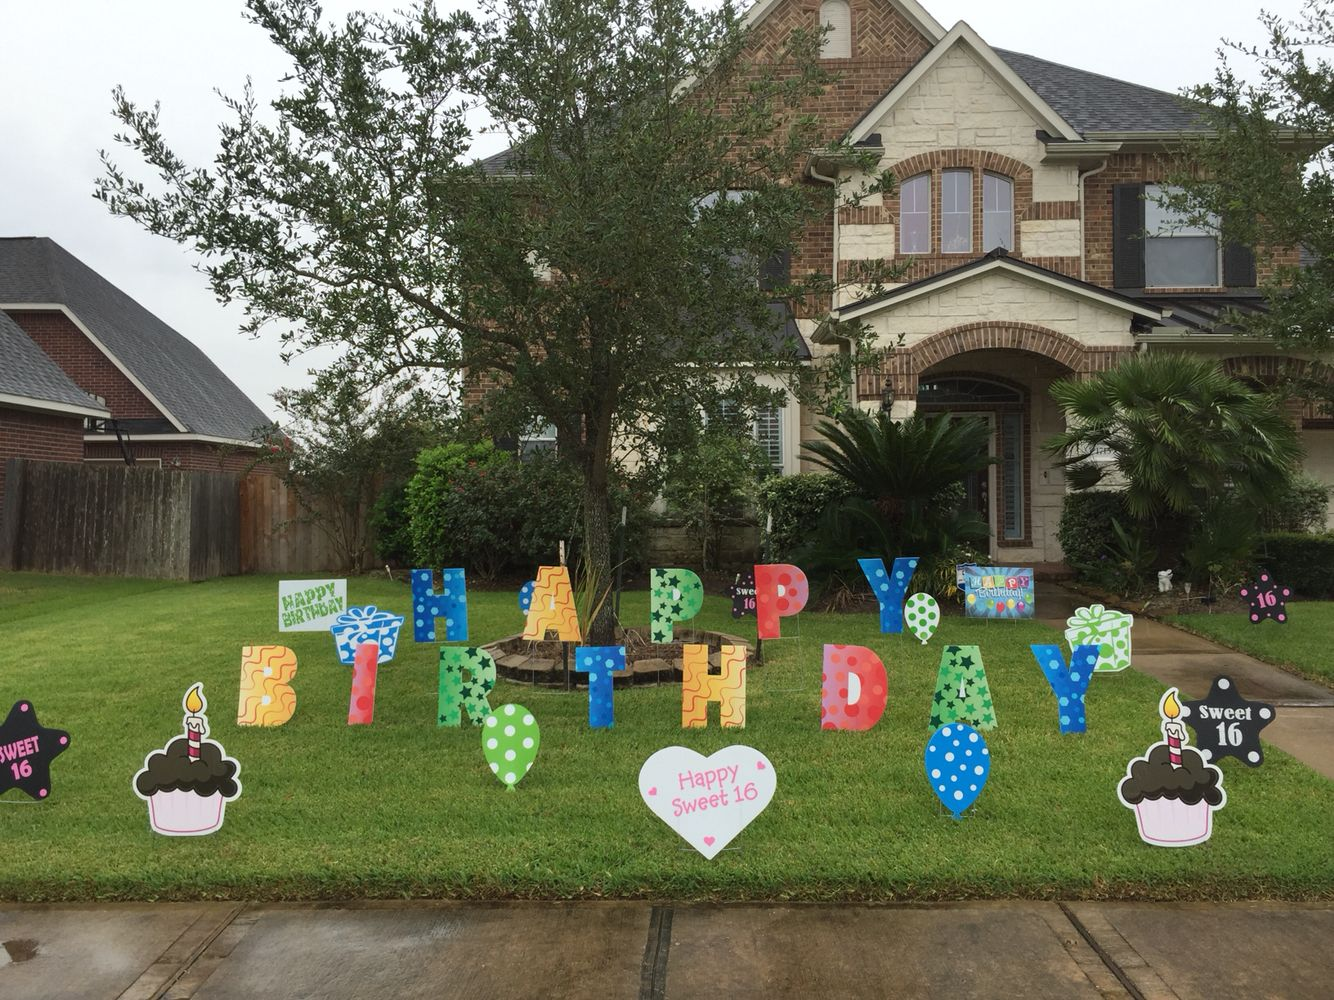 happy birthday lawn letters with other yard decor signs love the colors